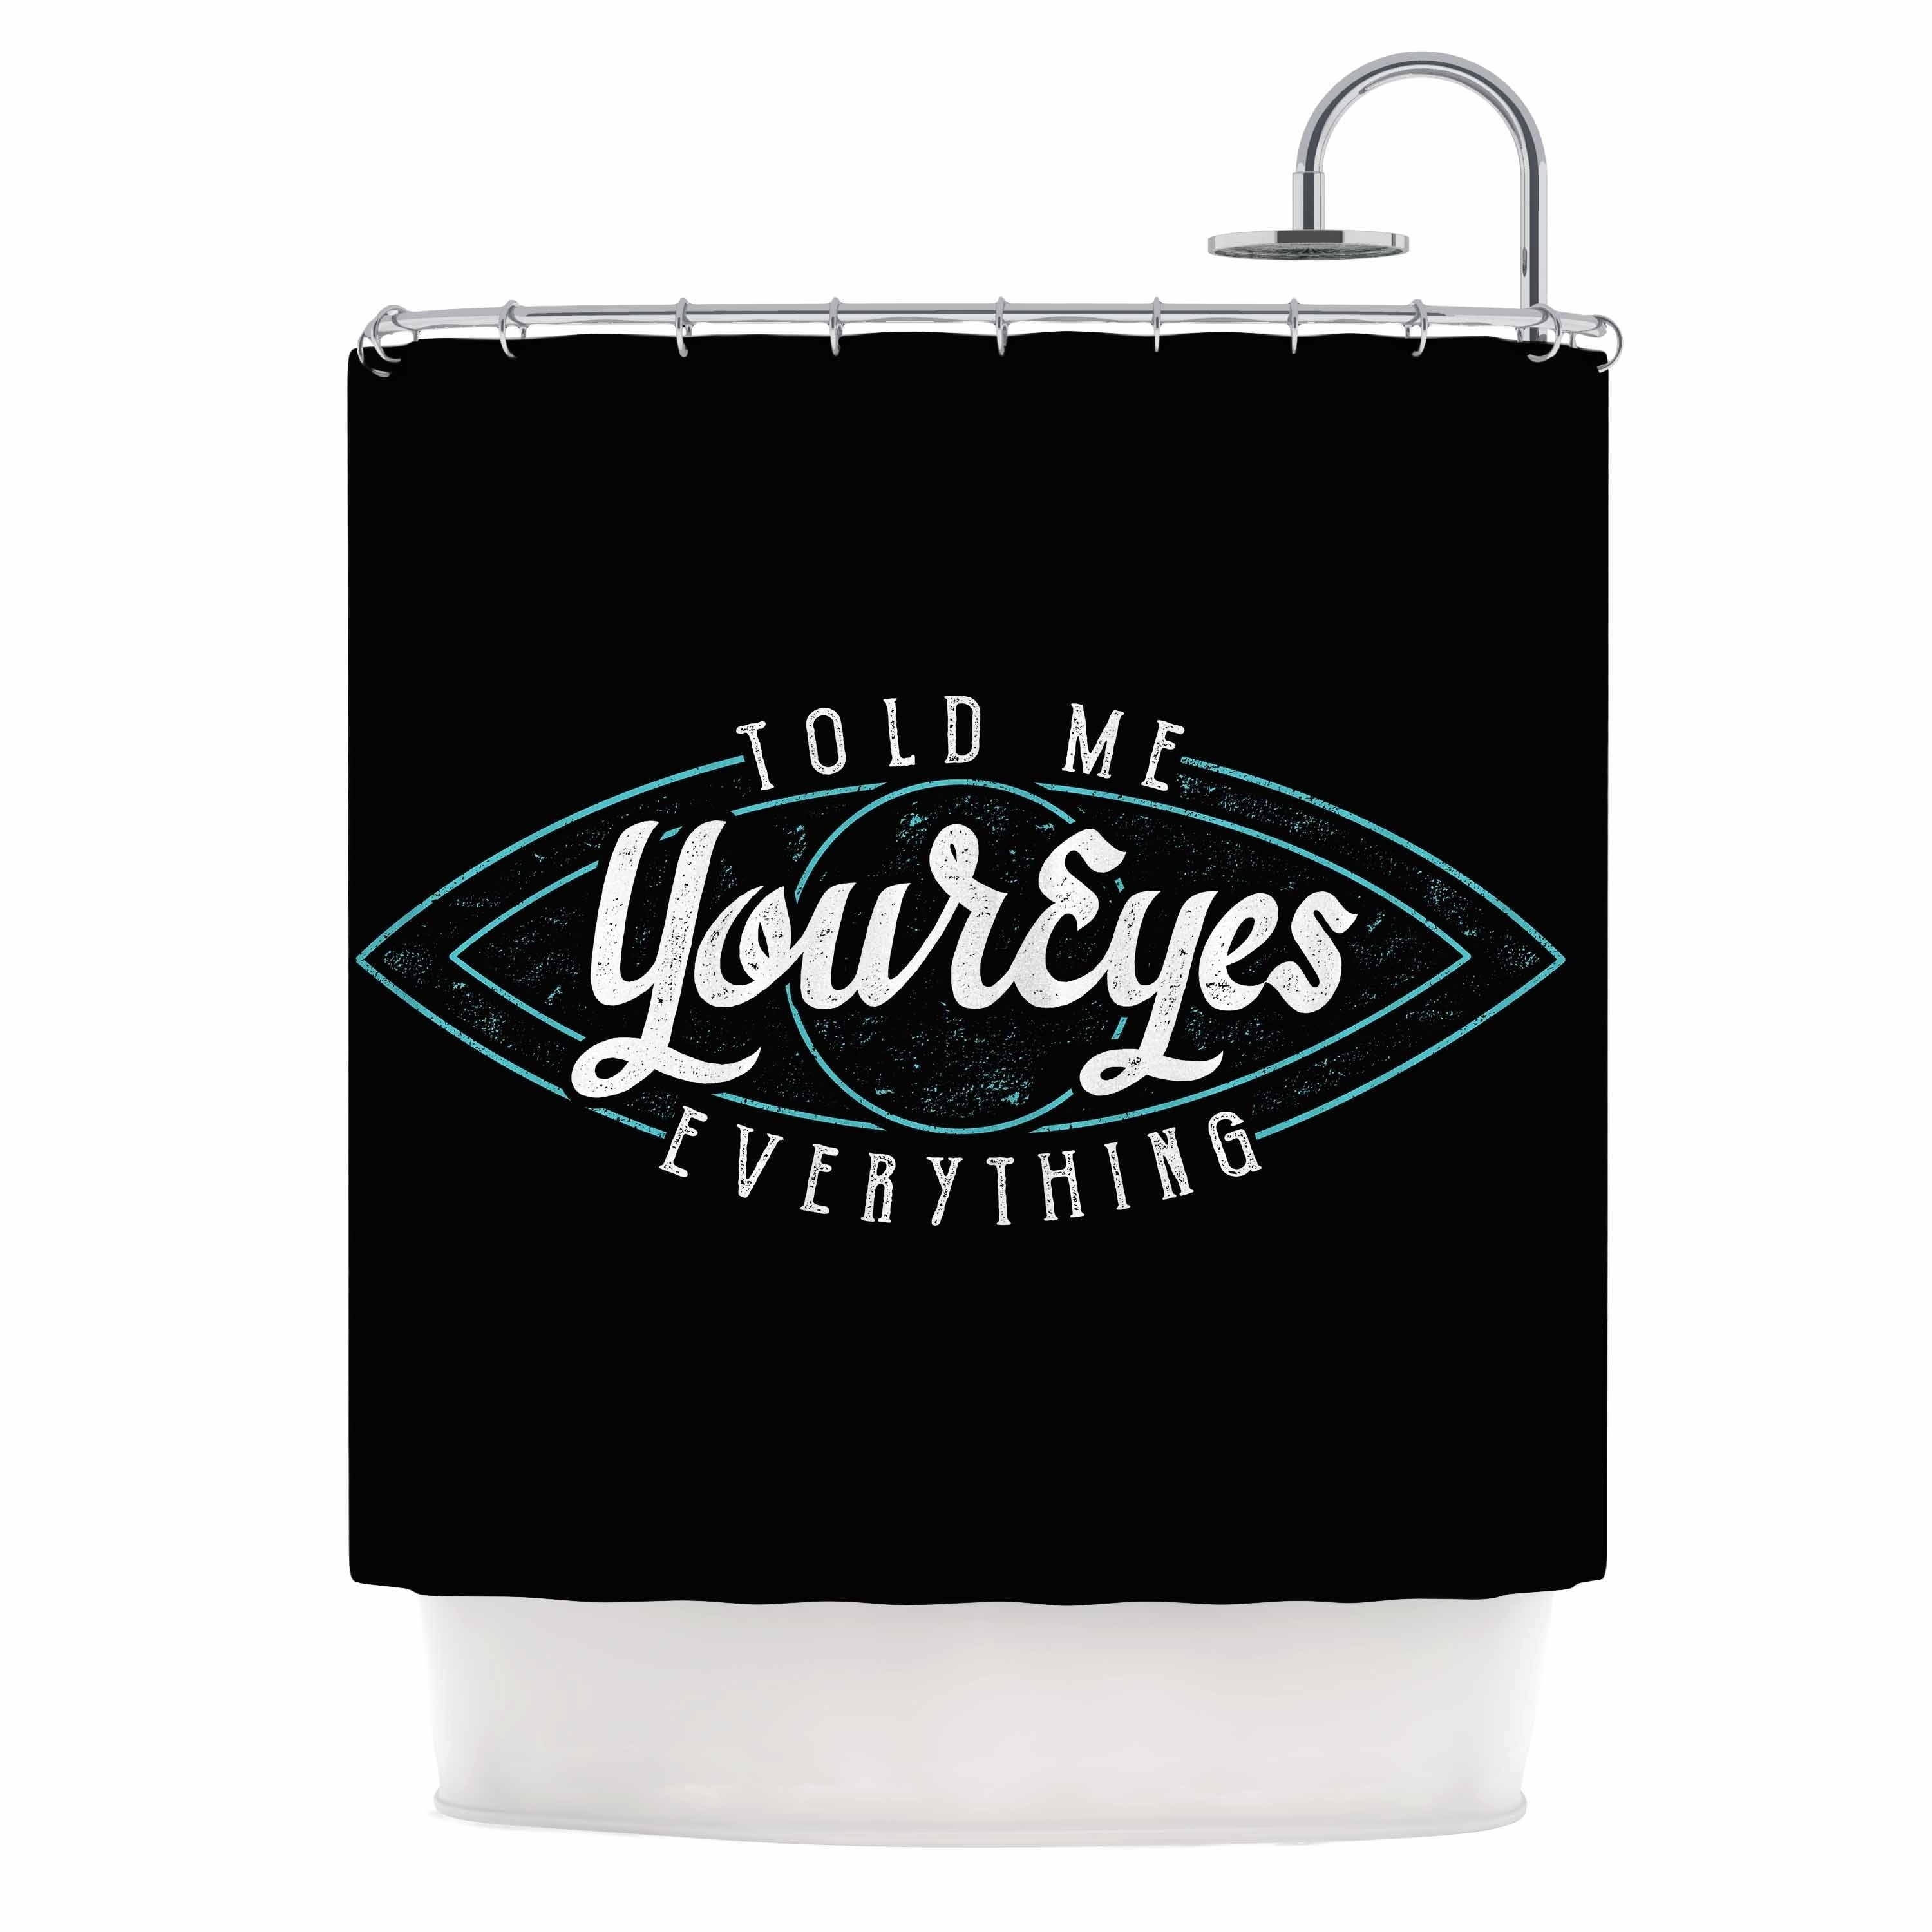 "Eikwox "" Behind Blue Eyes"" Shower Curtain Black Polyester - Diamond Home USA"